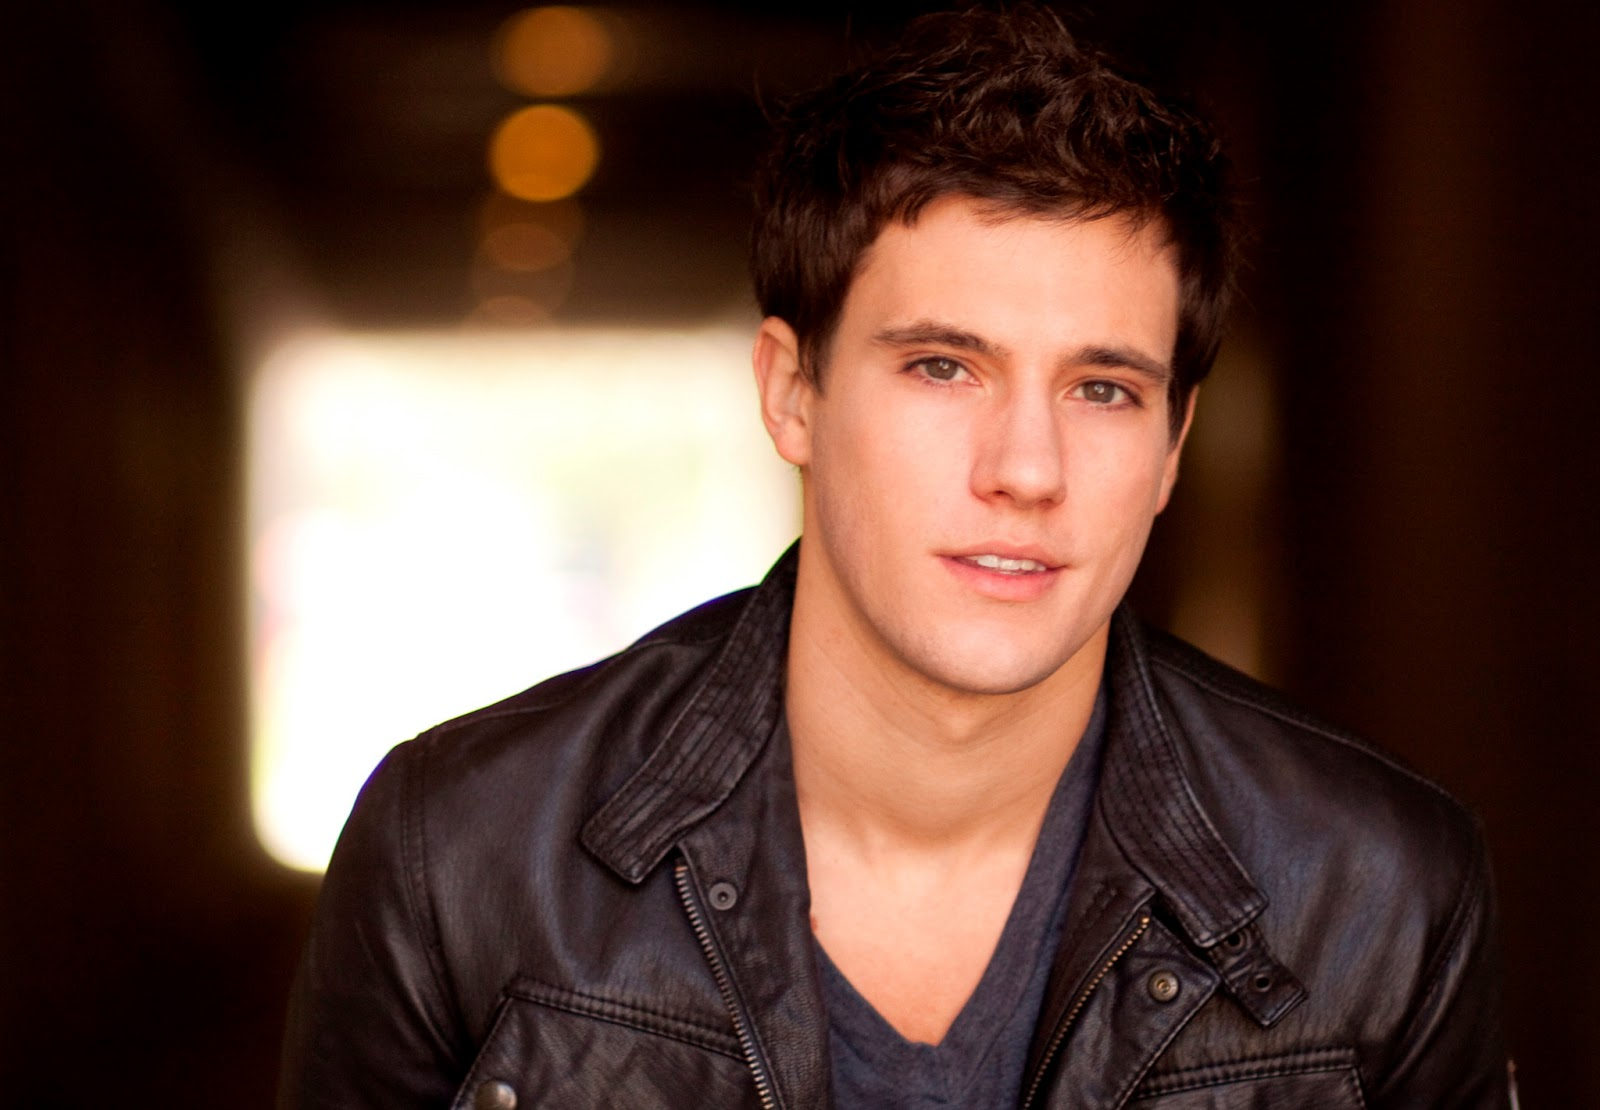 drew roy fan sitedrew roy gif, drew roy height, drew roy screencaps, drew roy gif hunt, drew roy photoshoot, drew roy hannah montana, drew roy 2016, drew roy gallery, drew roy singing, drew roy instagram, drew roy tumblr, drew roy, drew roy icarly, drew roy 2015, drew roy falling skies, drew roy and sarah carter, drew roy wedding, drew roy facebook, drew roy fan site, drew roy wikipedia